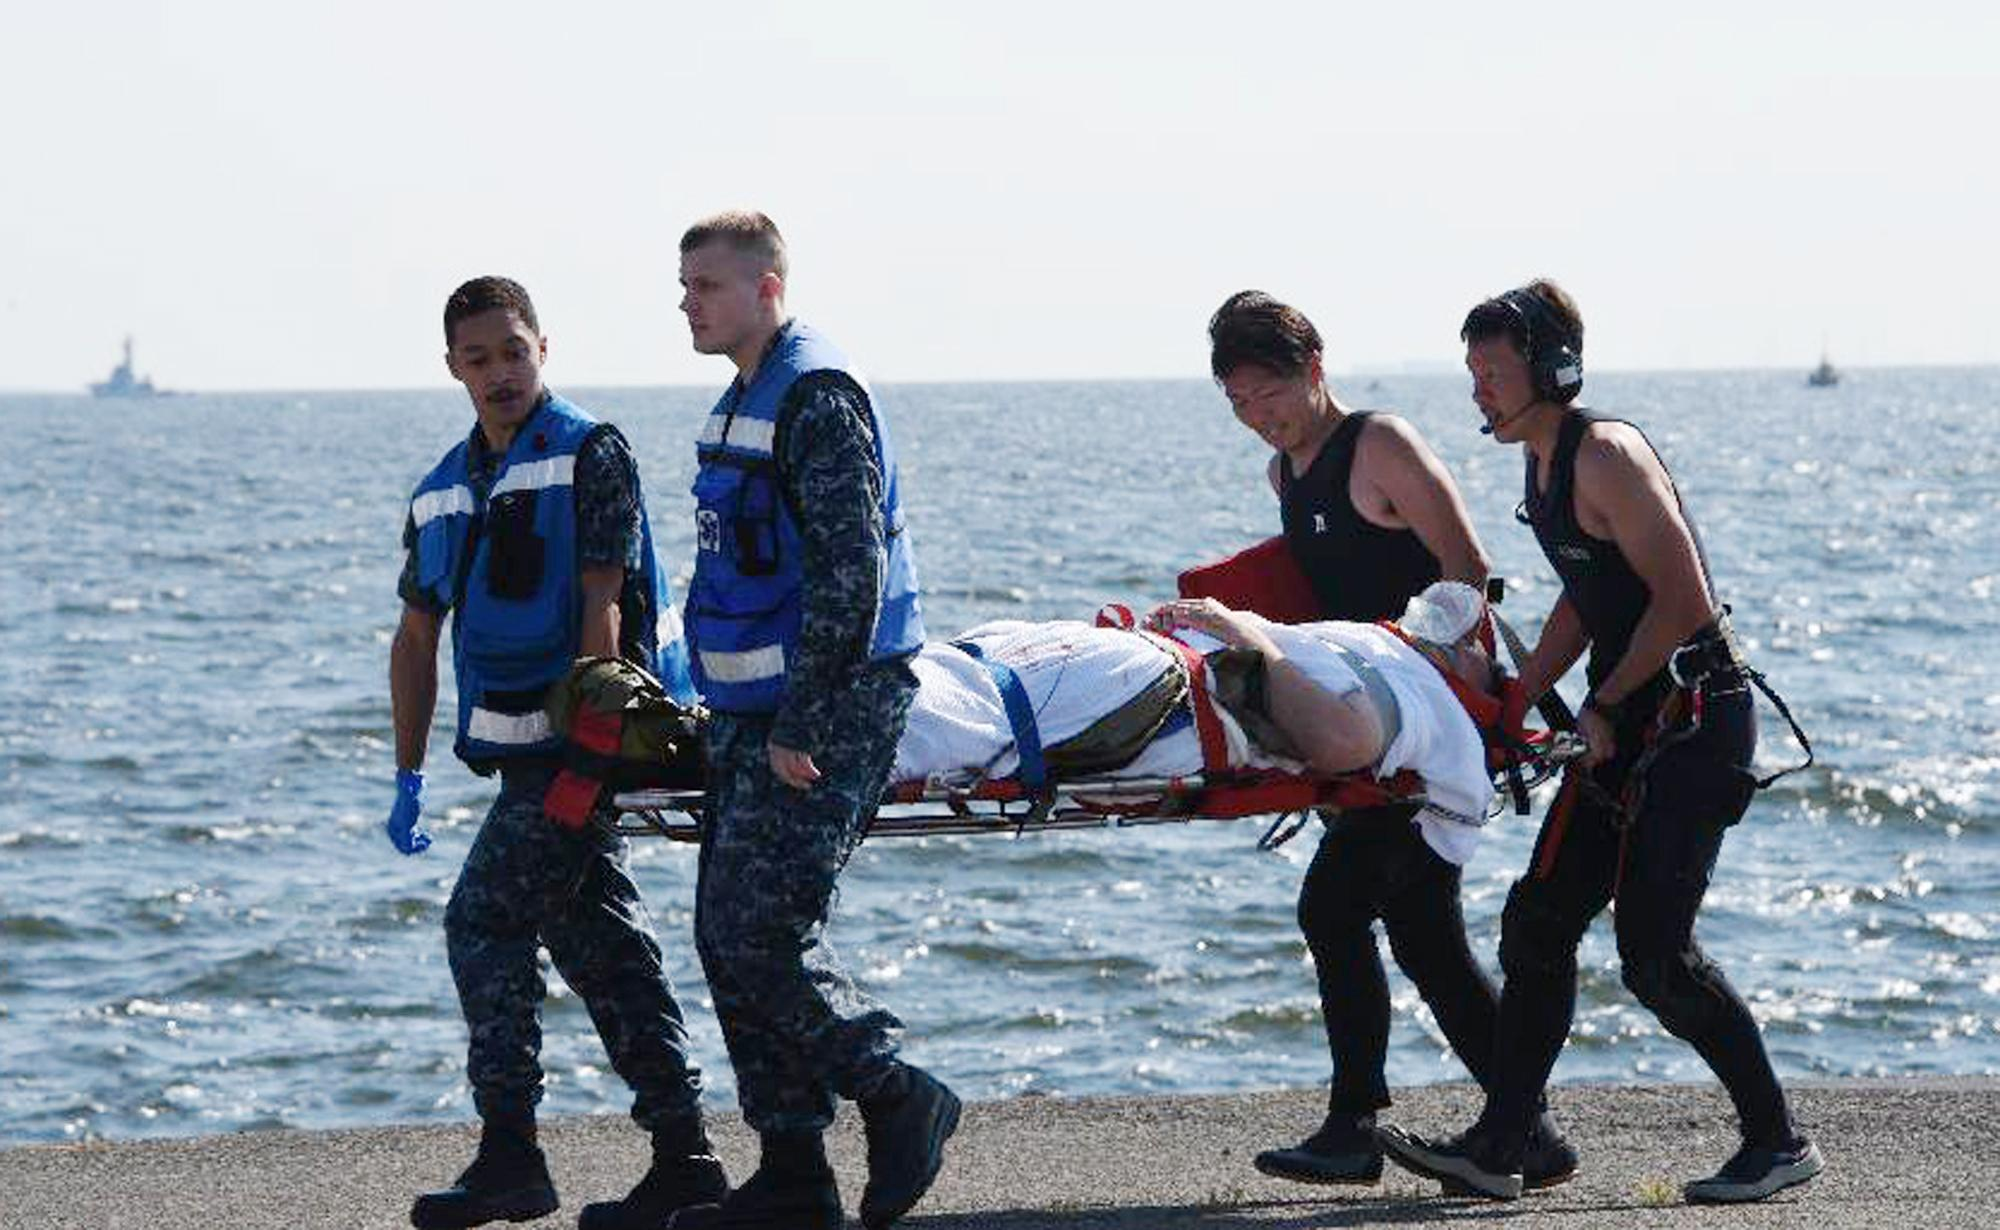 In this photo released by Japan's Defense Ministry, an injured USS Fitzgerald personnel is carried by U.S. military personnel, left, and Japanese Maritime Self-Defense Force members upon arriving to the U.S. Naval base in Yokosuka, southwest of Tokyo, after the U.S. destroyer collided with the Philippine-registered container ship ACX Crystal in the waters off the Izu Peninsula Saturday, June 17, 2017. Seven Navy sailors were missing and at least two, including the captain, were injured after the collision off the coast of Japan before dawn Saturday, the U.S. Navy and Japanese coast guard reported. (Japan's Defense Ministry via AP)